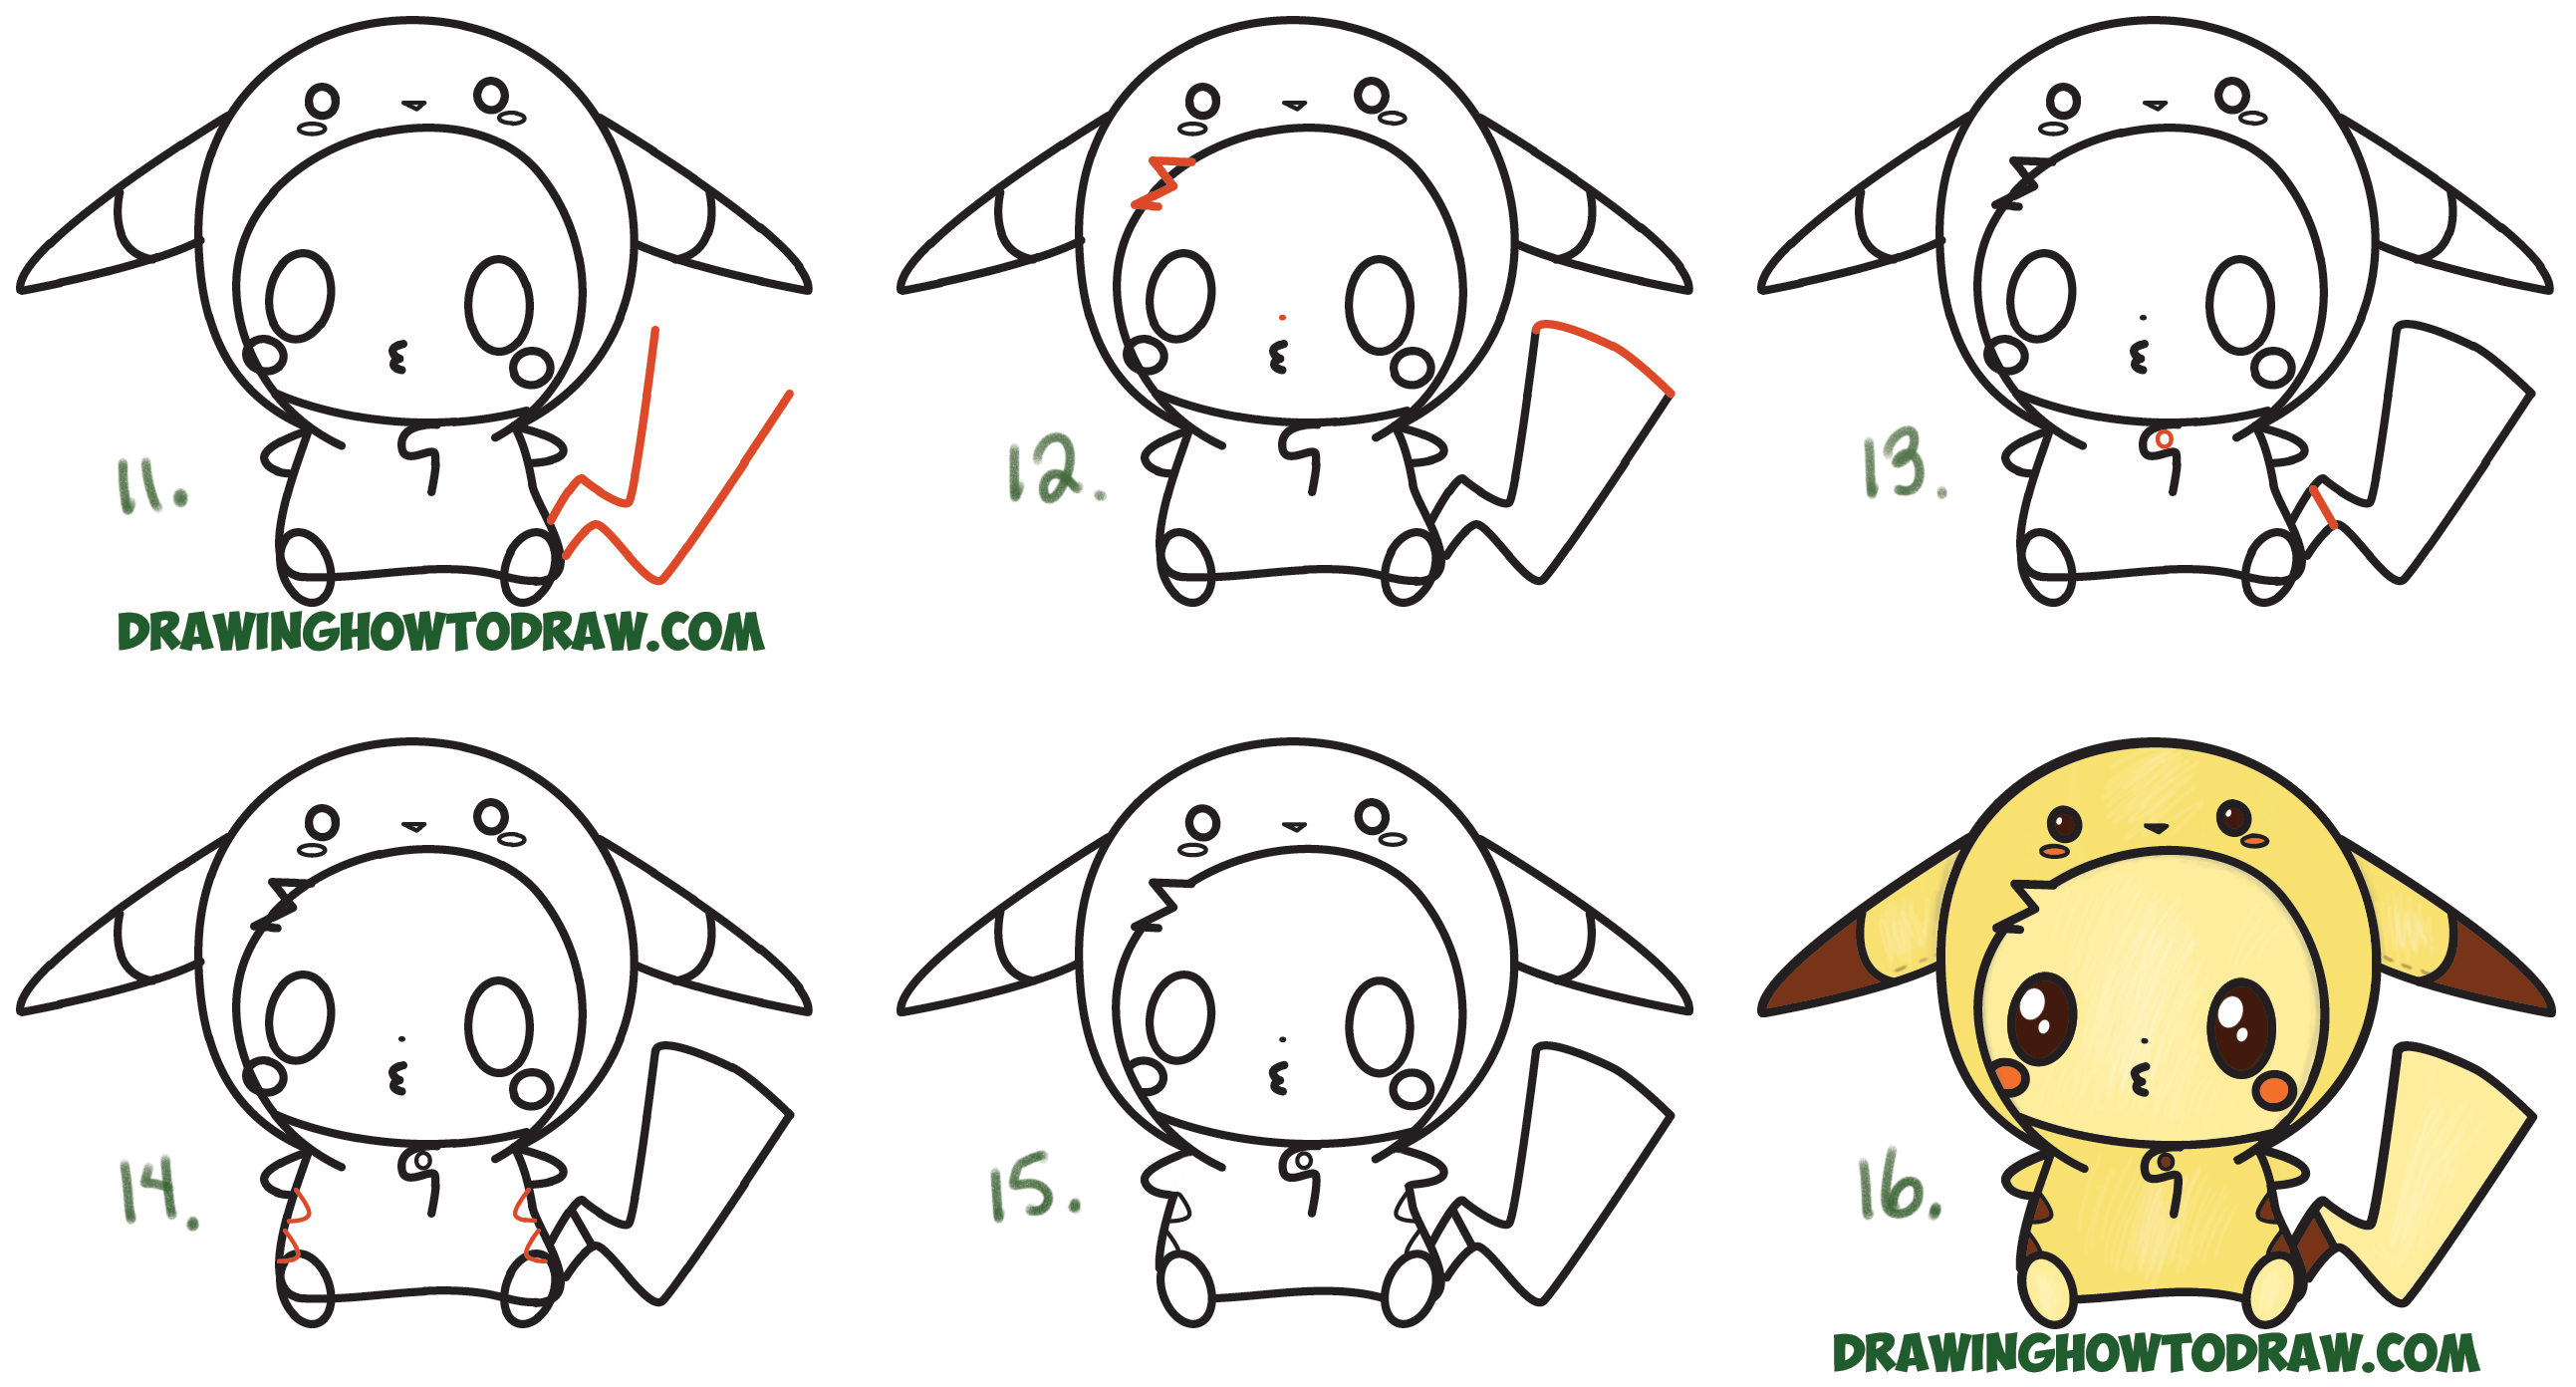 Learn How to Draw Cute Pikachu with Costume Hood from Pokemon (Kawaii / Chibi Style) Simple Steps Drawing Lesson for Children